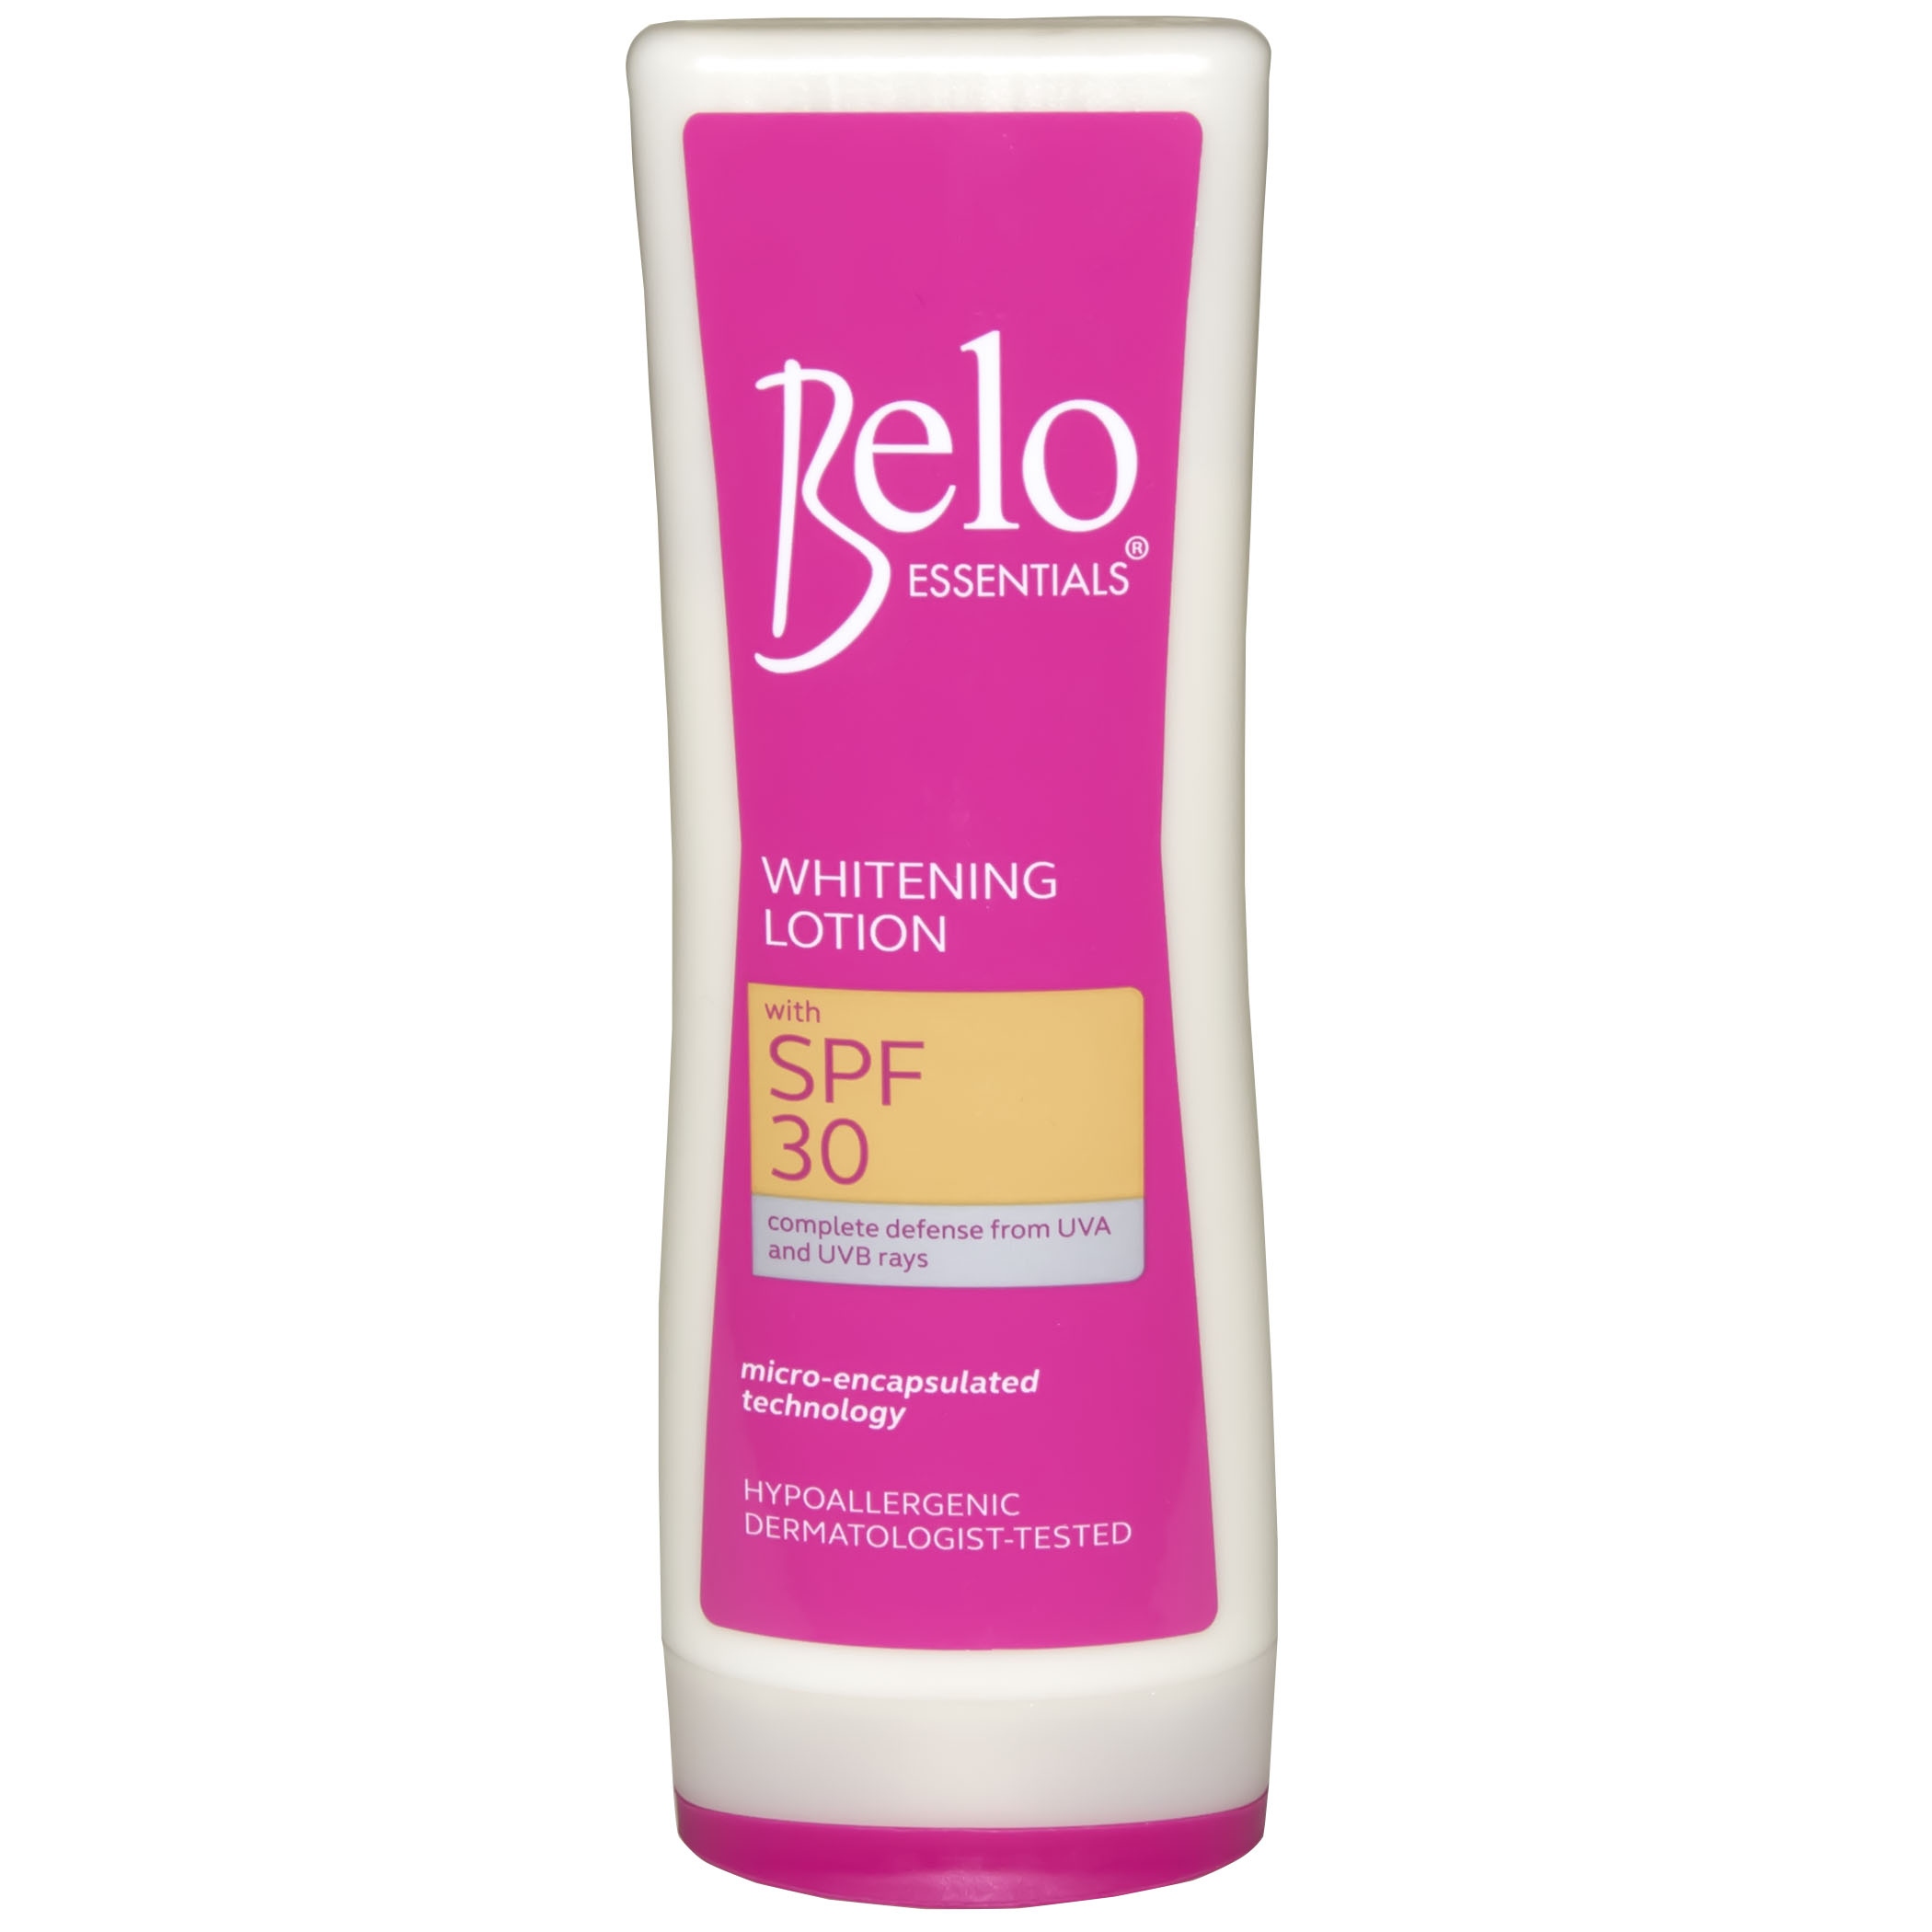 Belo Essentials Whitening Lotion with SPF 30 100ml